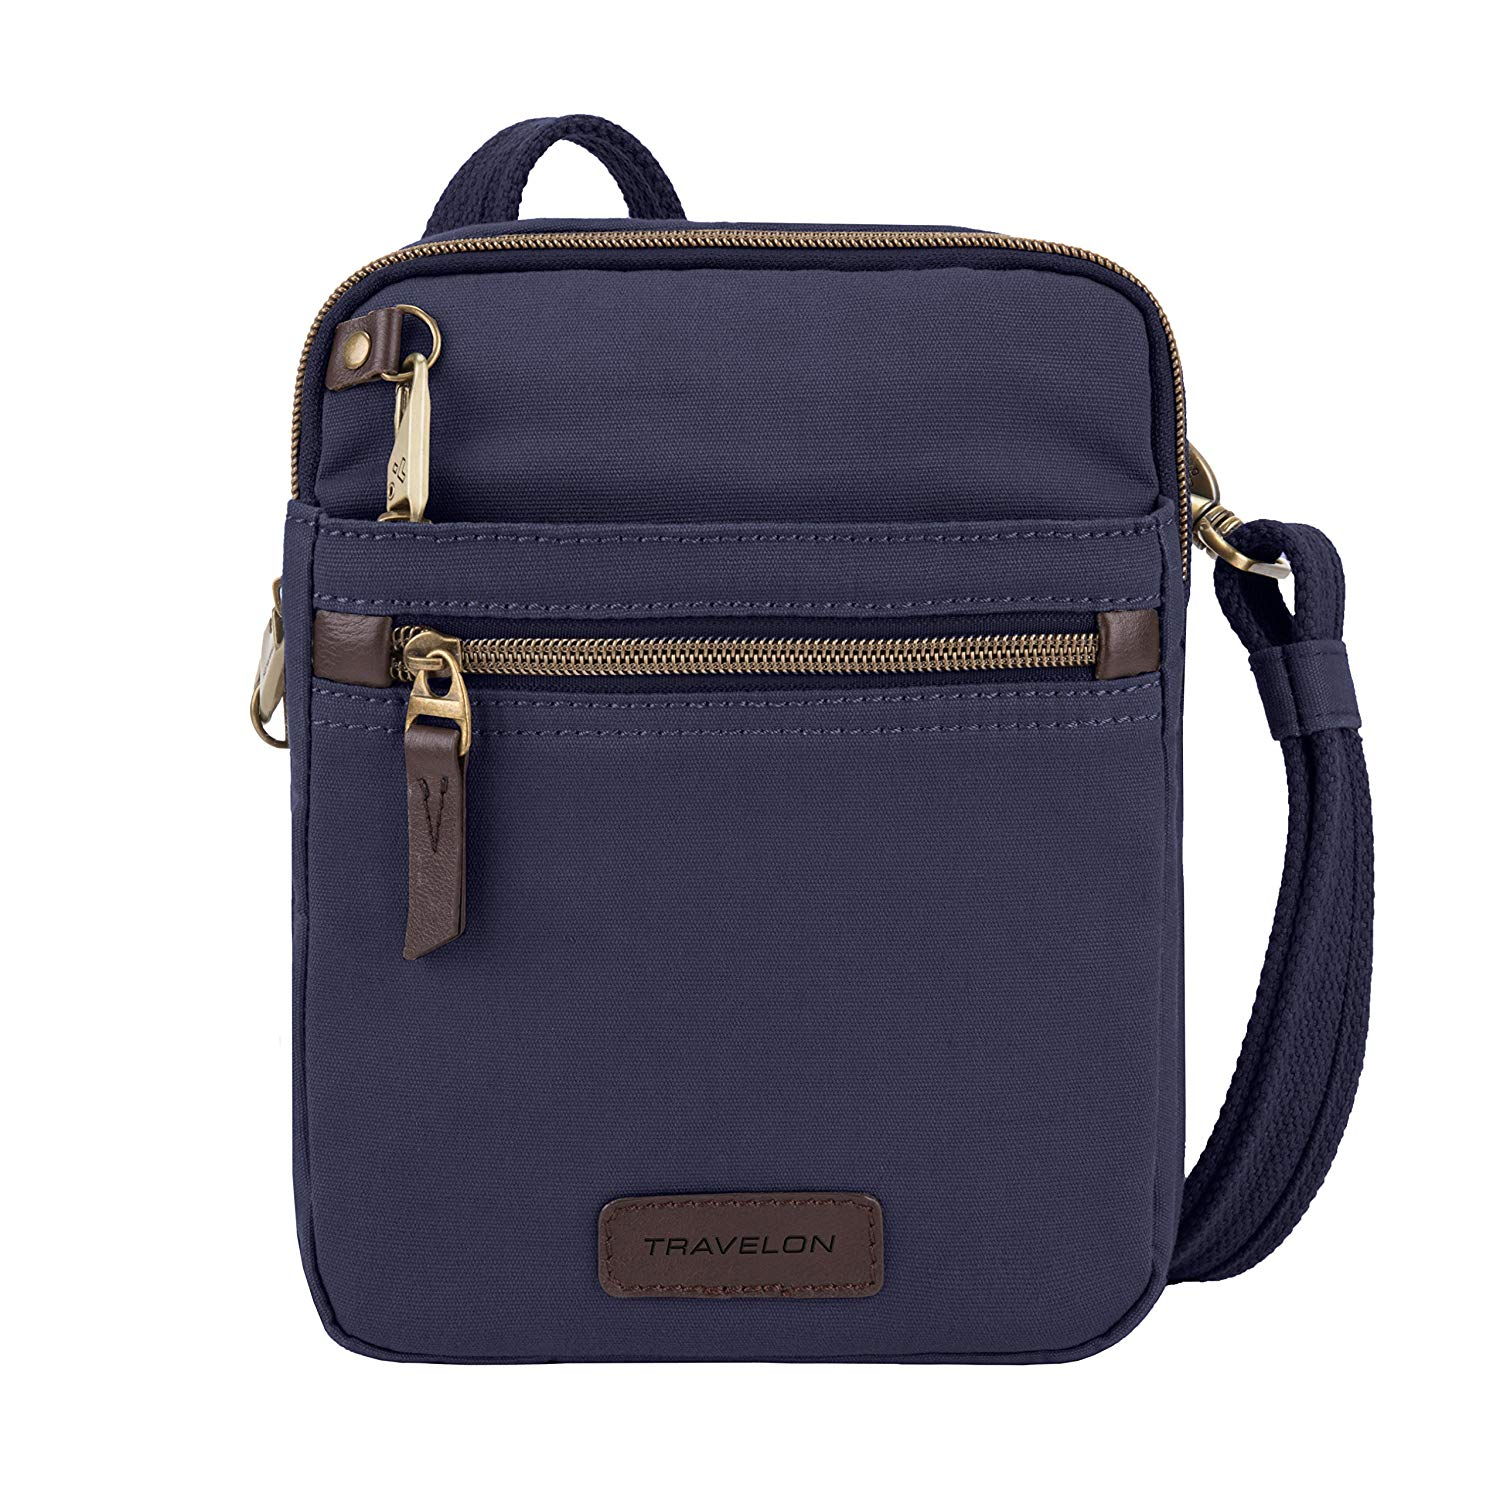 Travelon Anti-Theft Courier Small N/s Slim Travel Tote, Navy, One Size